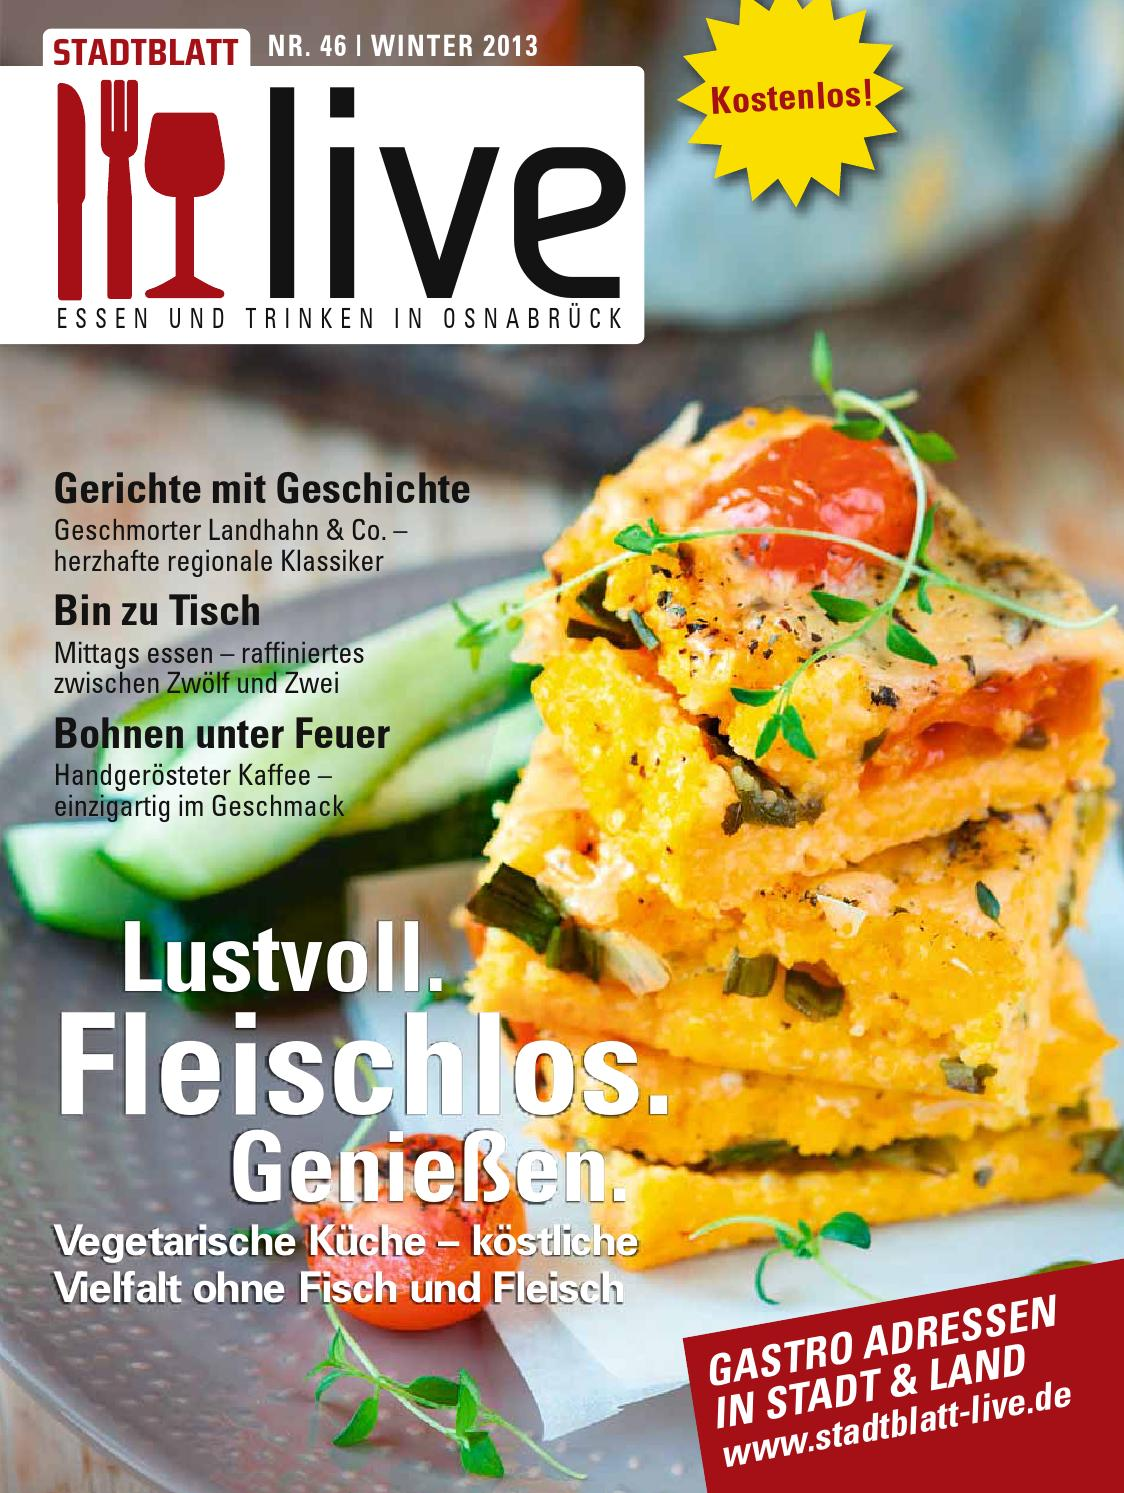 STADTBLATT live Winter 2013/2014 by bvw werbeagentur - issuu